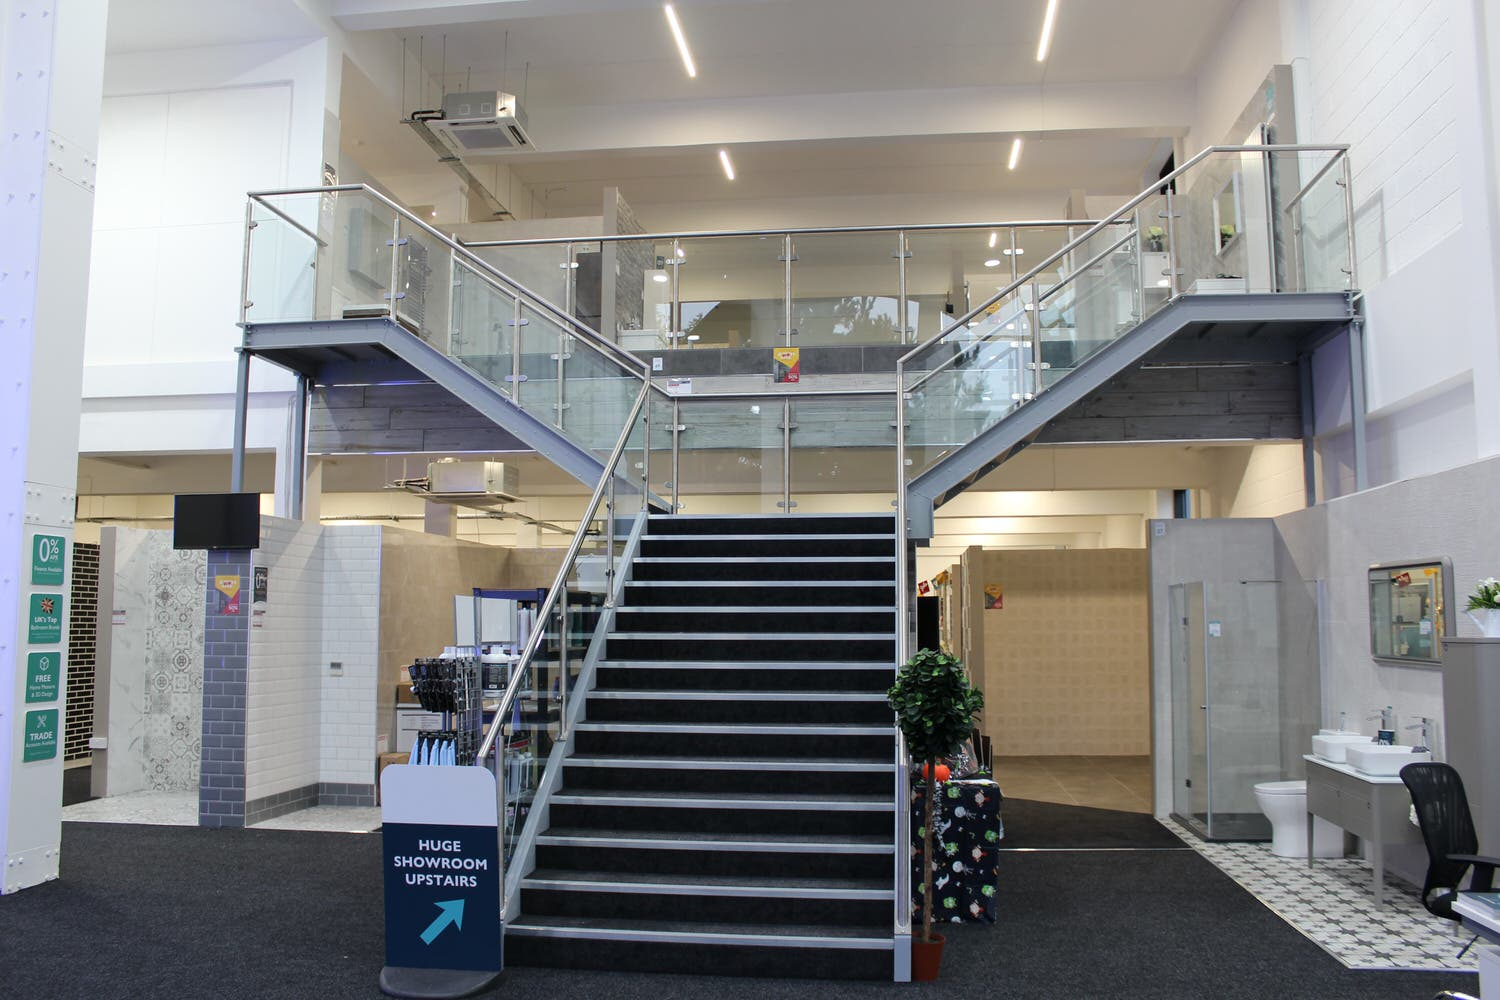 One Retailer – Twenty Two Retail Mezzanine Floors and Counting